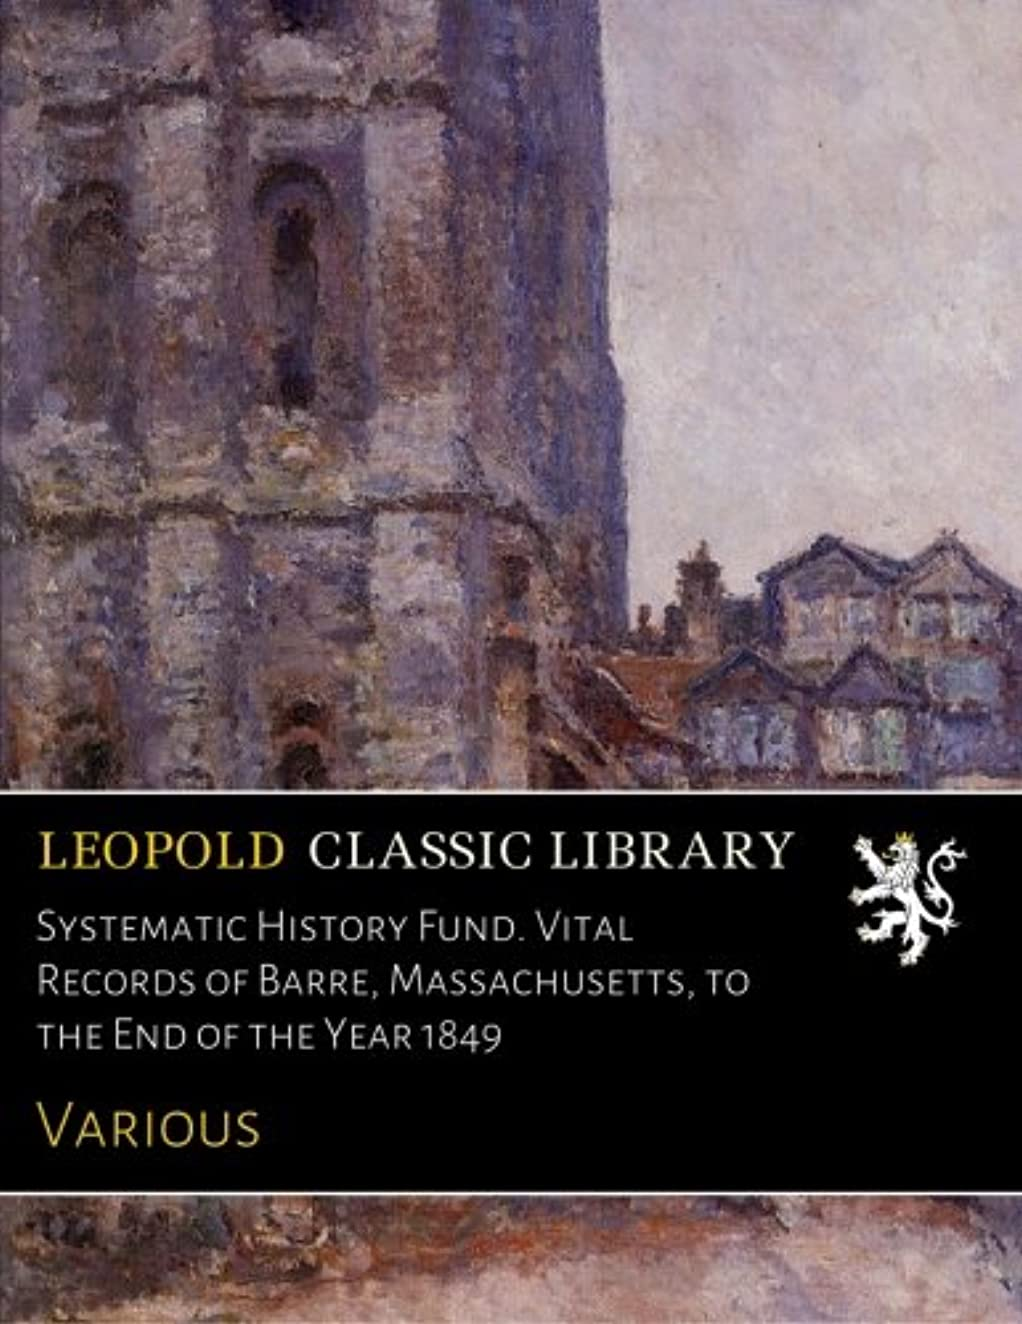 Systematic History Fund. Vital Records of Barre, Massachusetts, to the End of the Year 1849